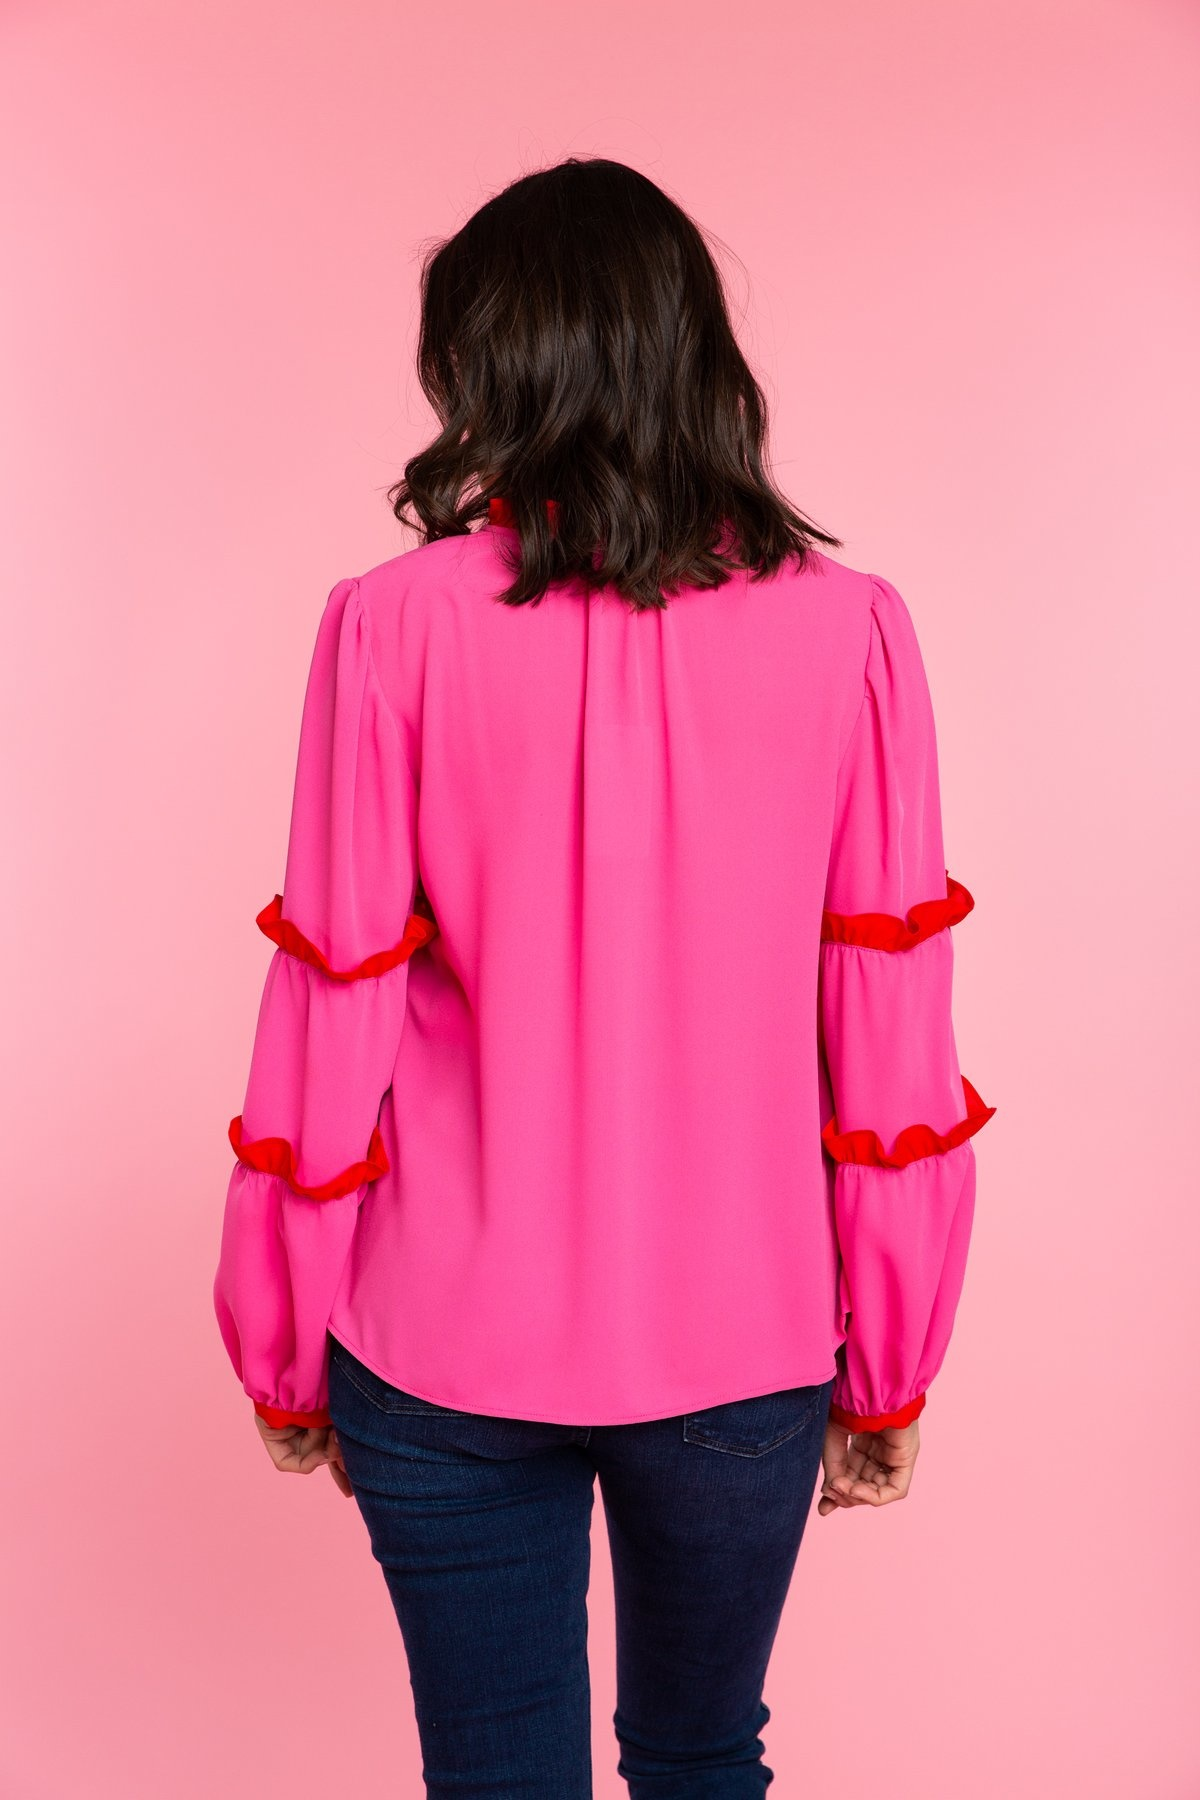 Crosby By Mollie Burch Rhodes Blouse Candy Pink